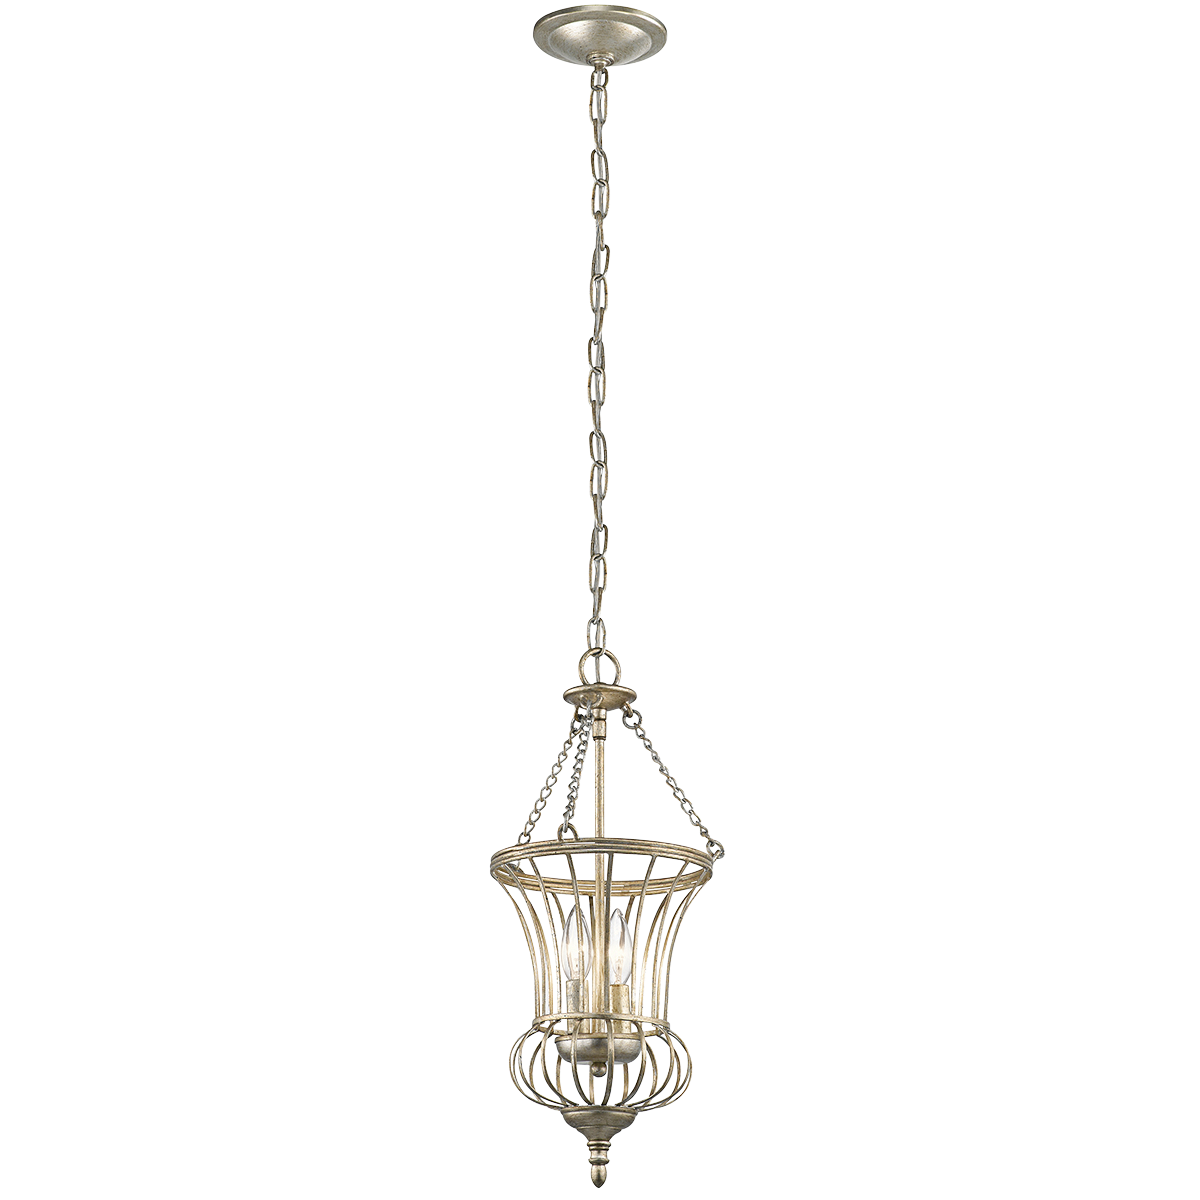 Calla 2 light foyer pendant sterling gold 42610sgd kichler calla 2 light foyer pendant sterling gold 42610sgd kichler arubaitofo Gallery